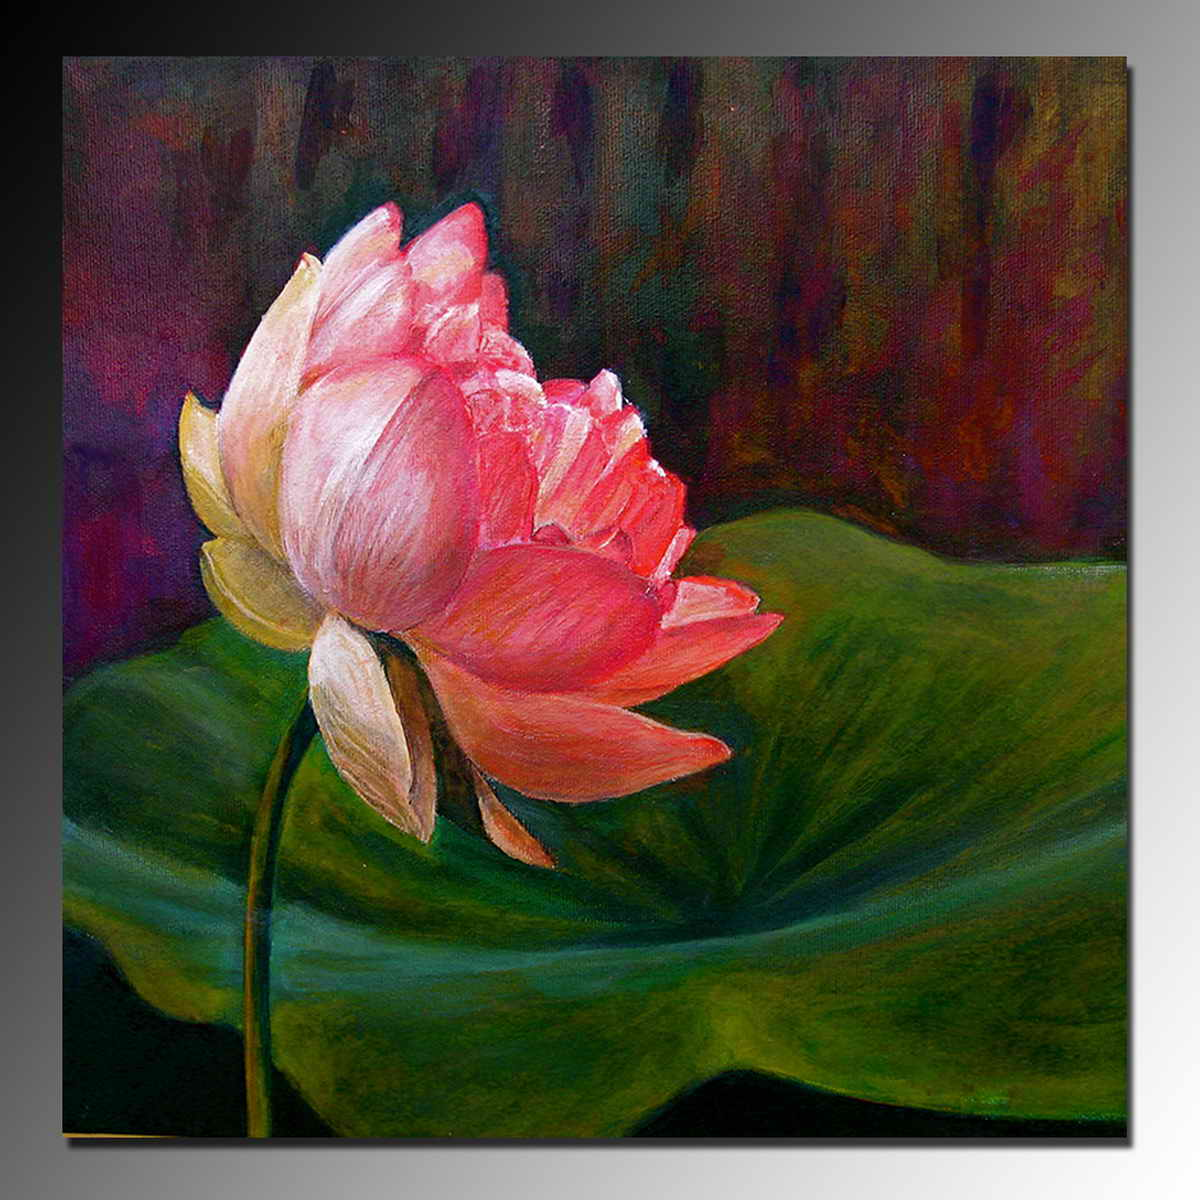 Handmade water lily lotus flower and leaf oil paintings for home handmade water lily lotus flower and leaf oil paintings for home decoration buy lotus flower oil paintingswater lily lotus flower oil paintingslotus izmirmasajfo